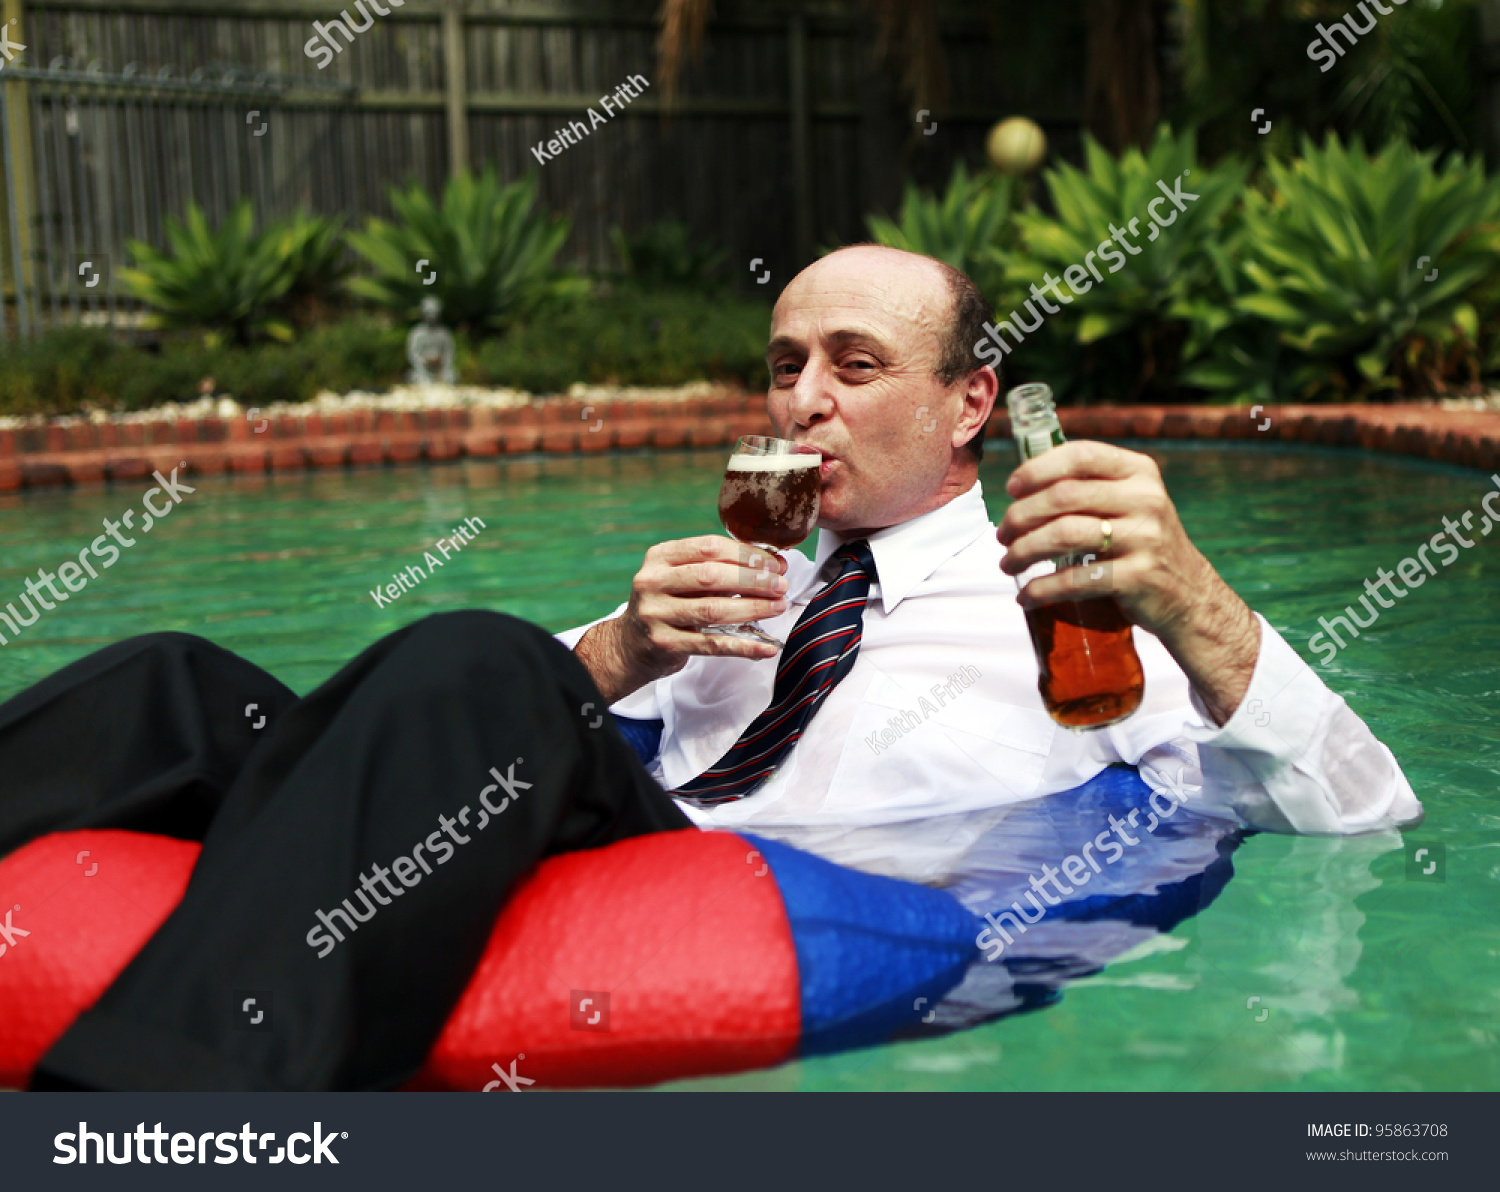 Business Man Dressed Business Attire Swimming Stock Photo 95863708 Shutterstock